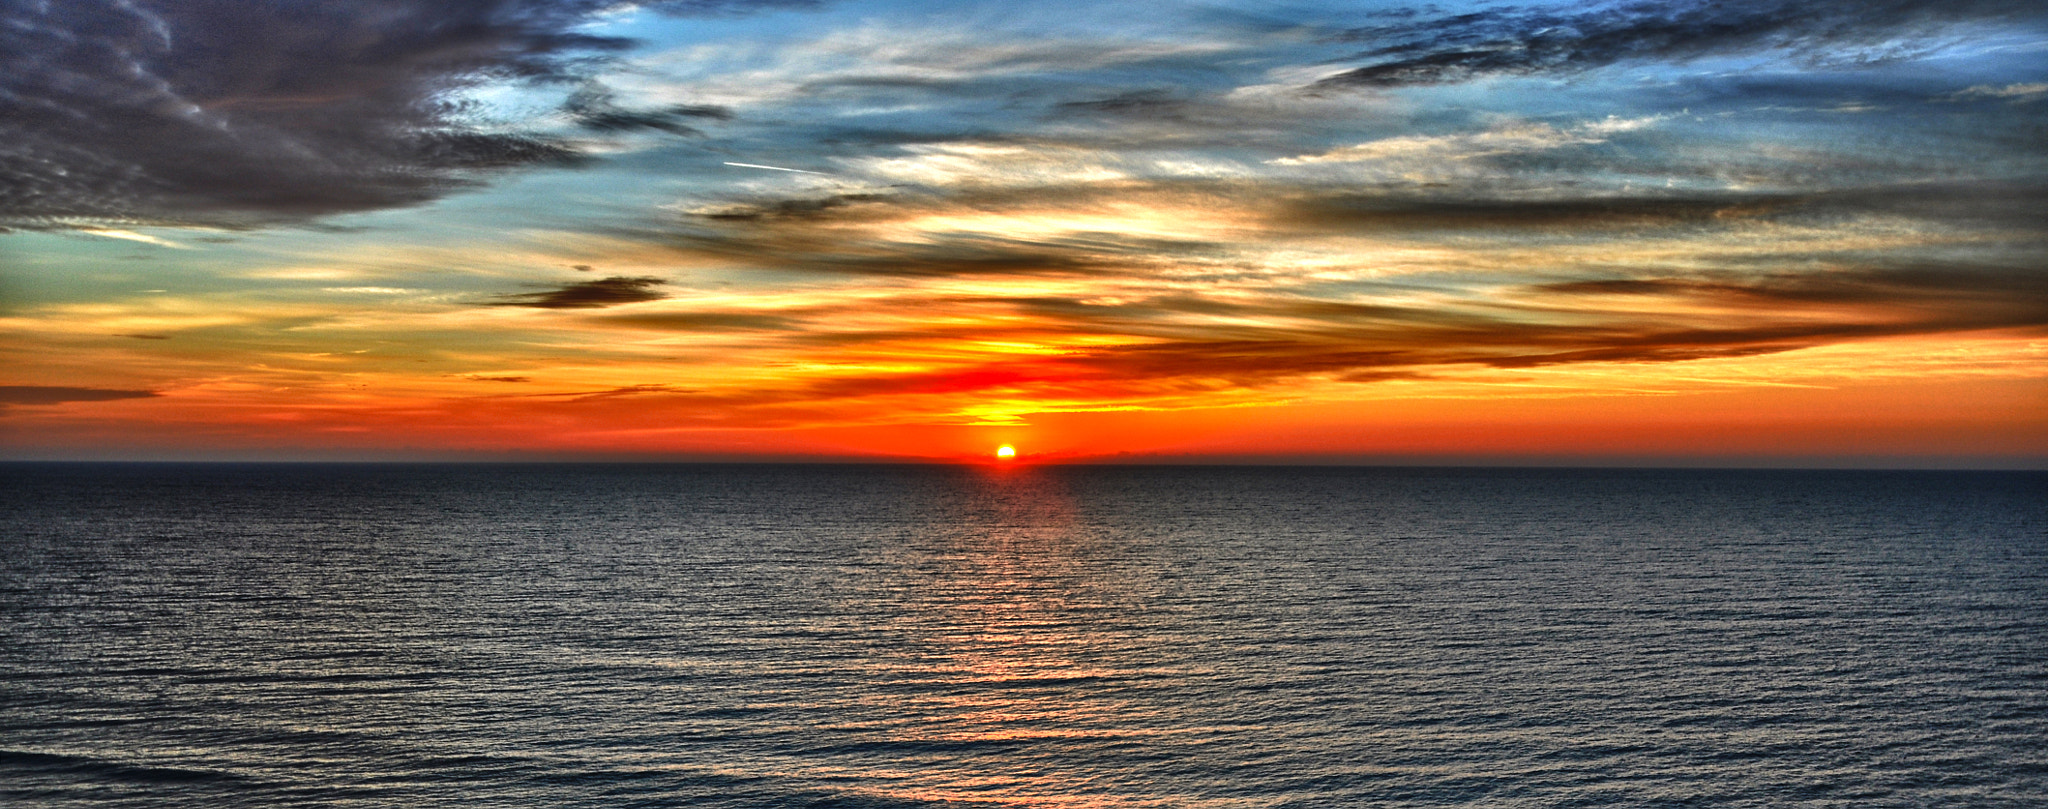 Photograph Sunrise over Atlantic by Sir Pixxalot on 500px